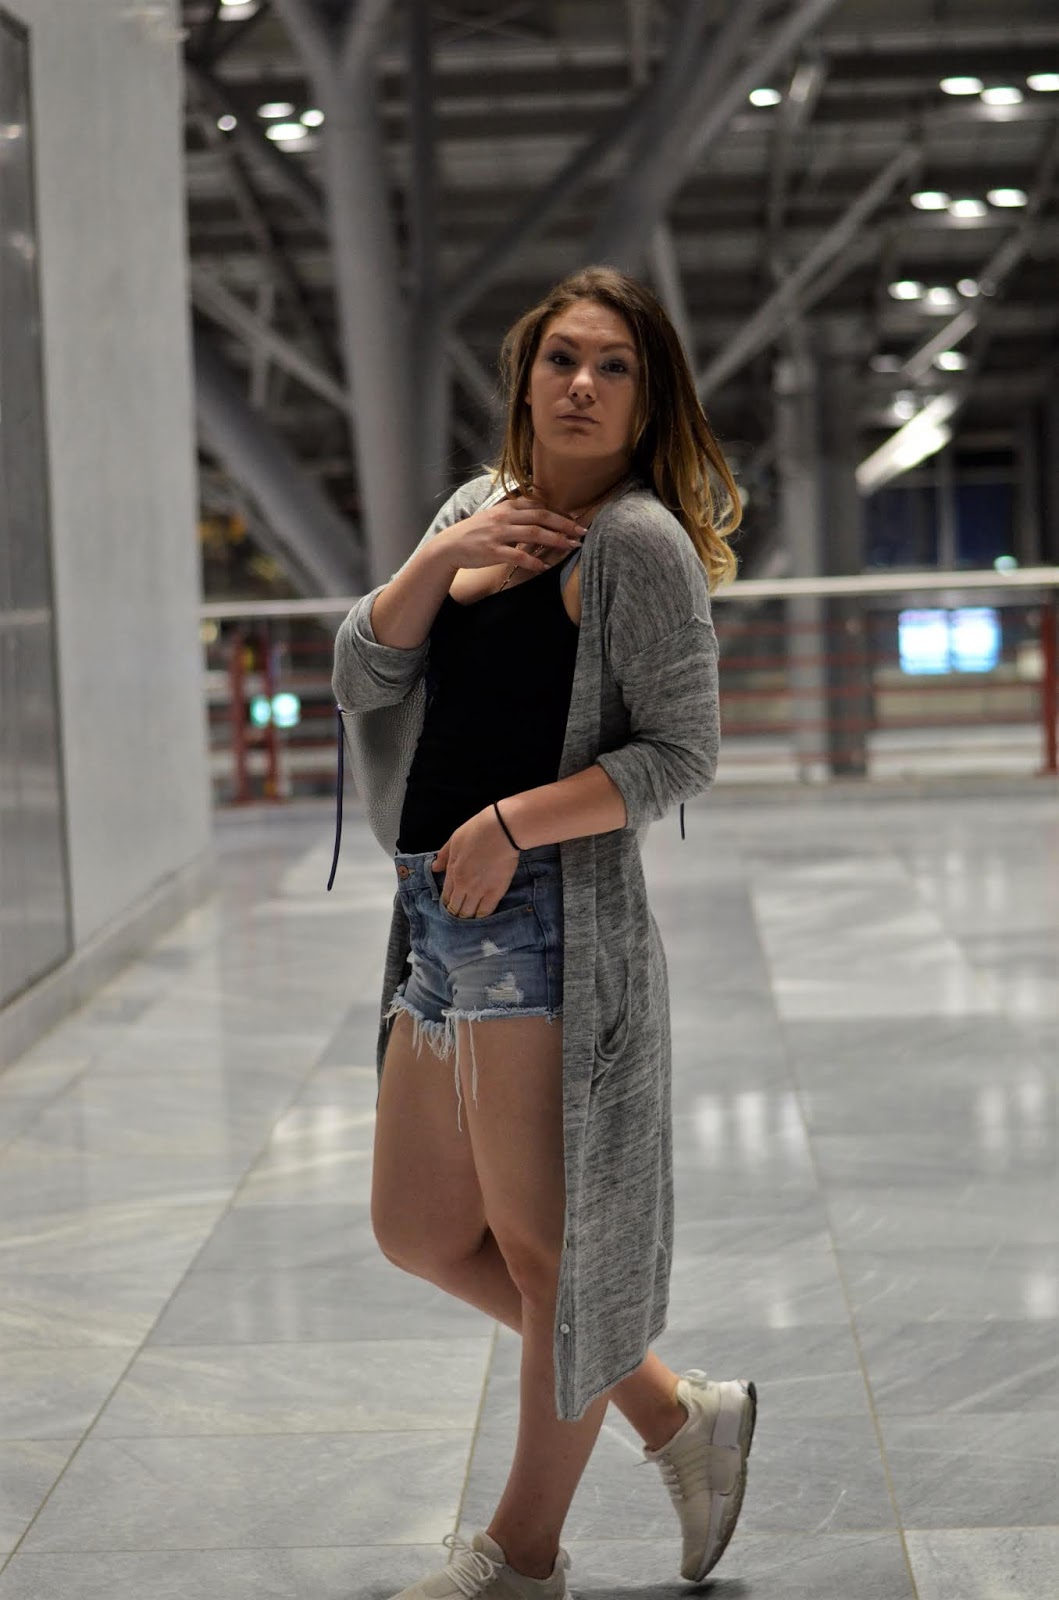 Valentinas Lifestyle Outfit Casual Airport Style